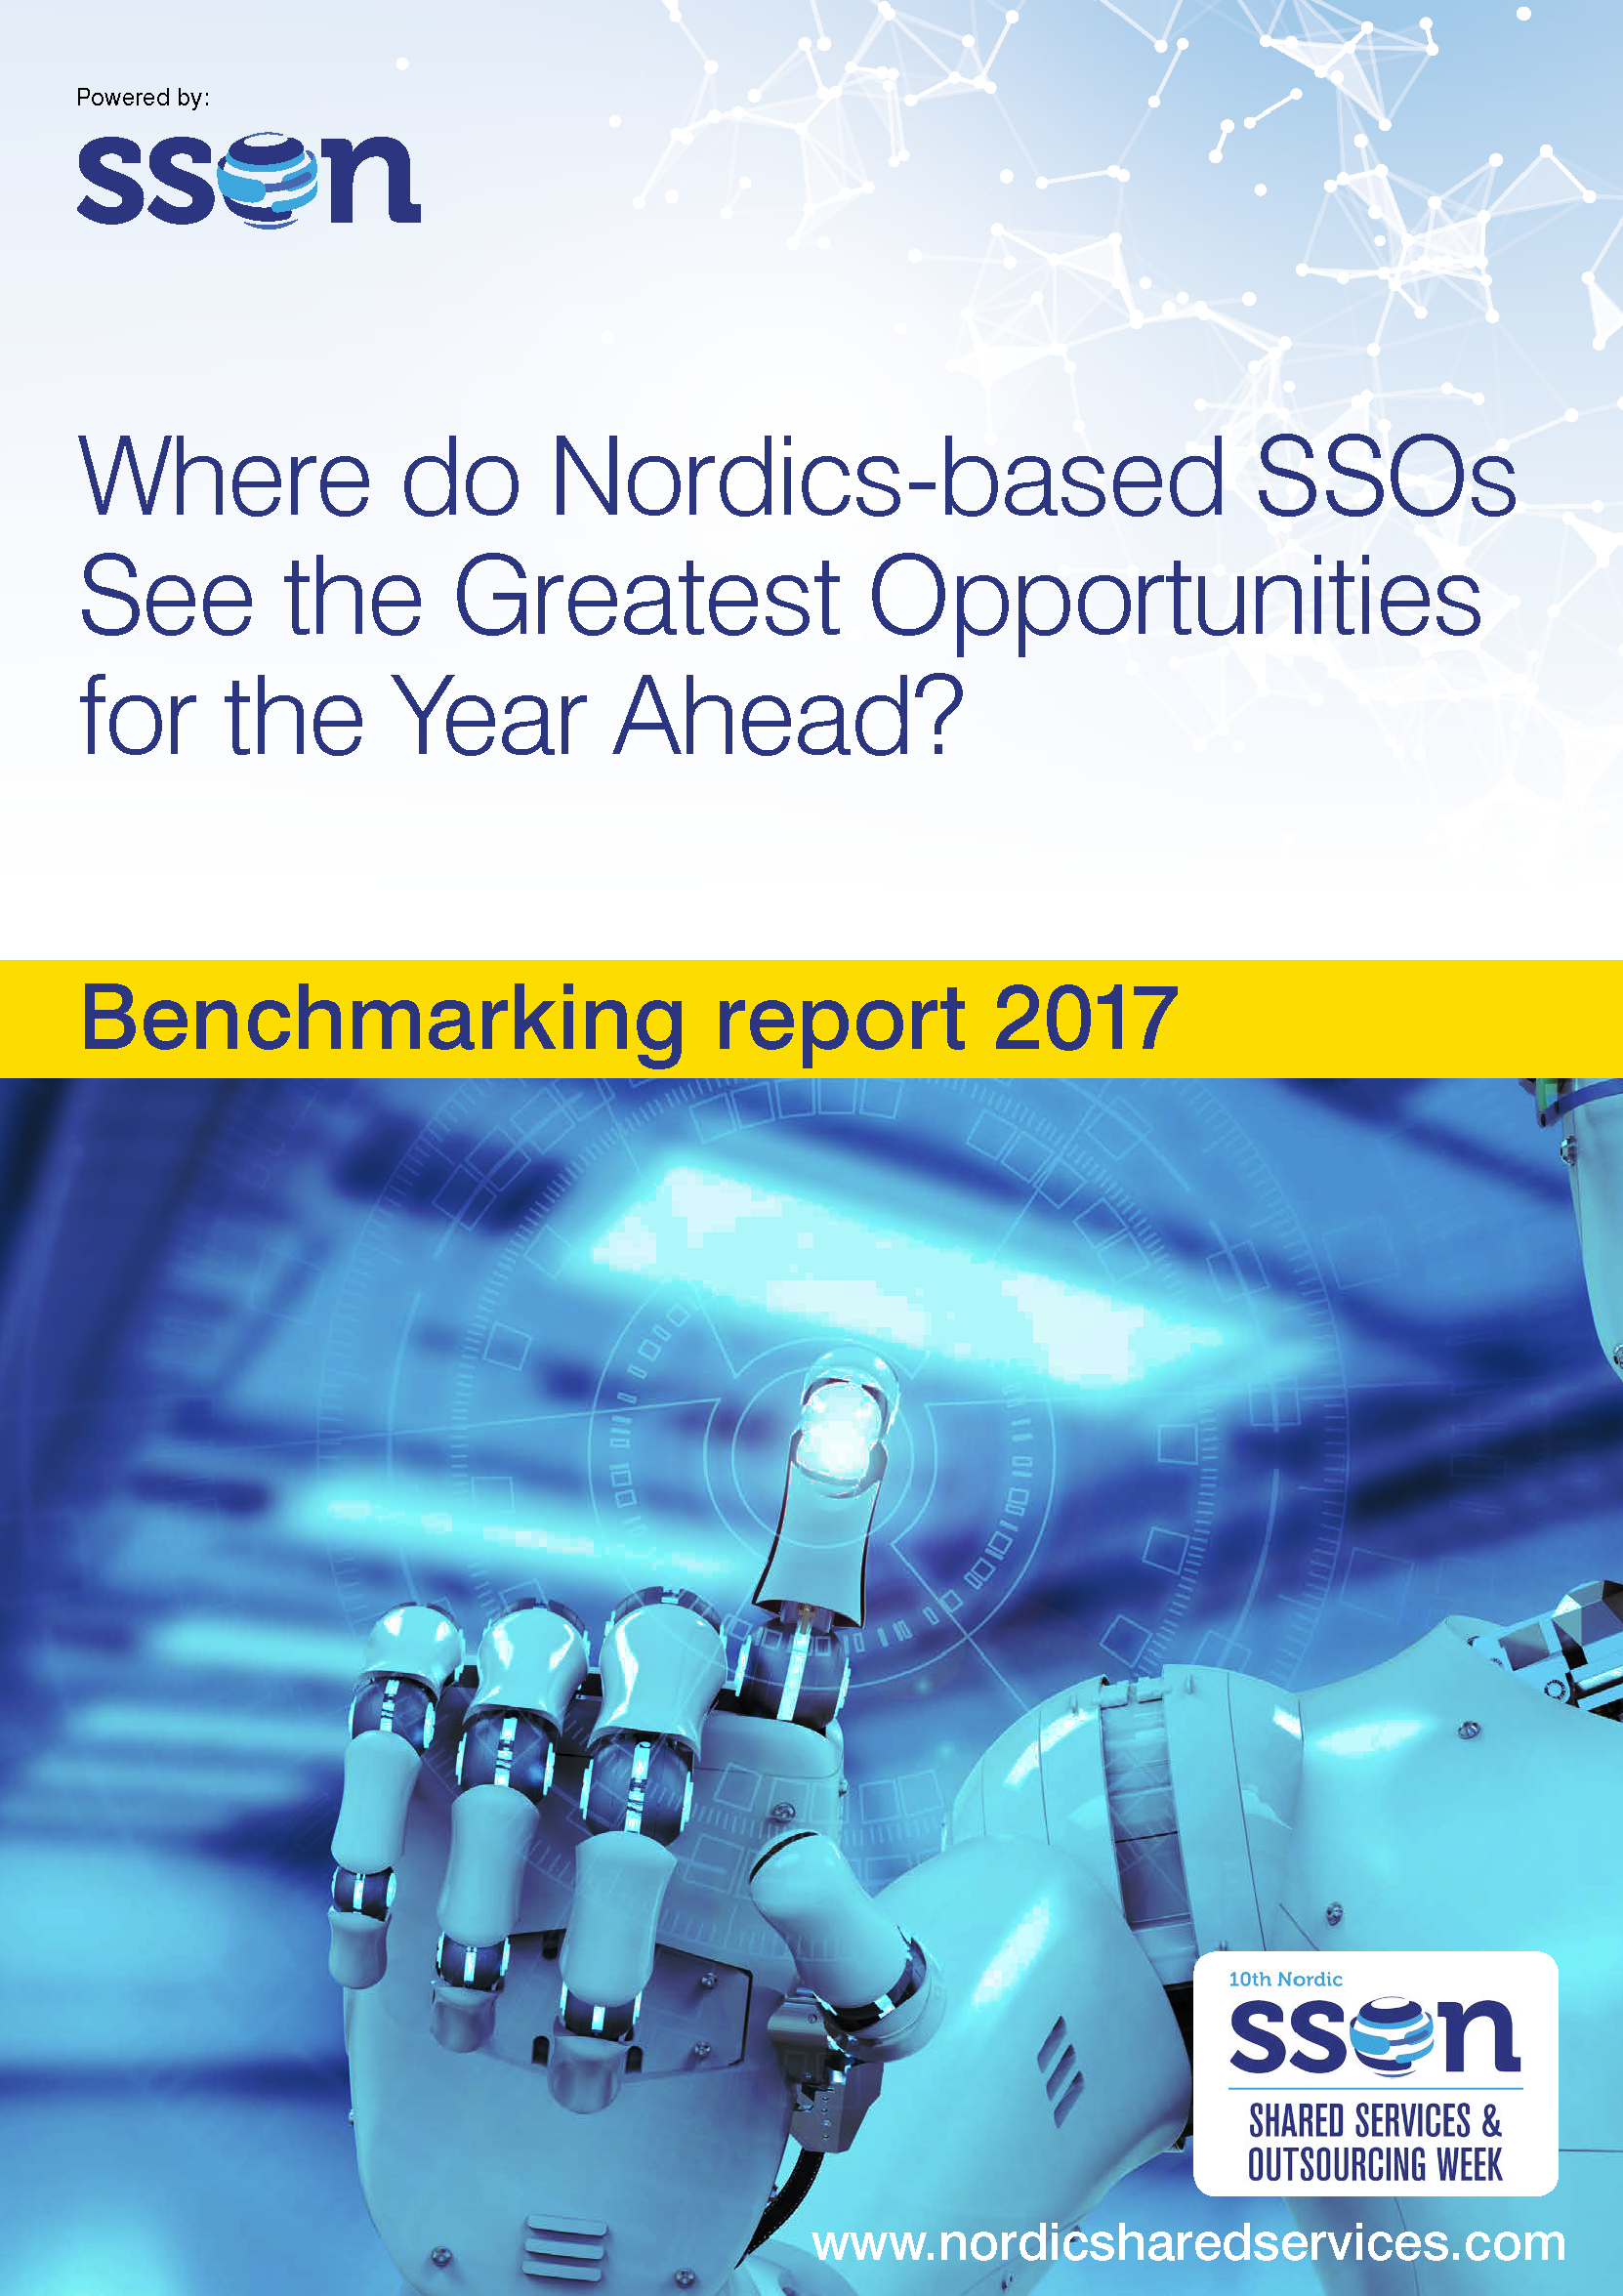 Where do Nordics-based SSOs See the Greatest Opportunities for the Year Ahead?